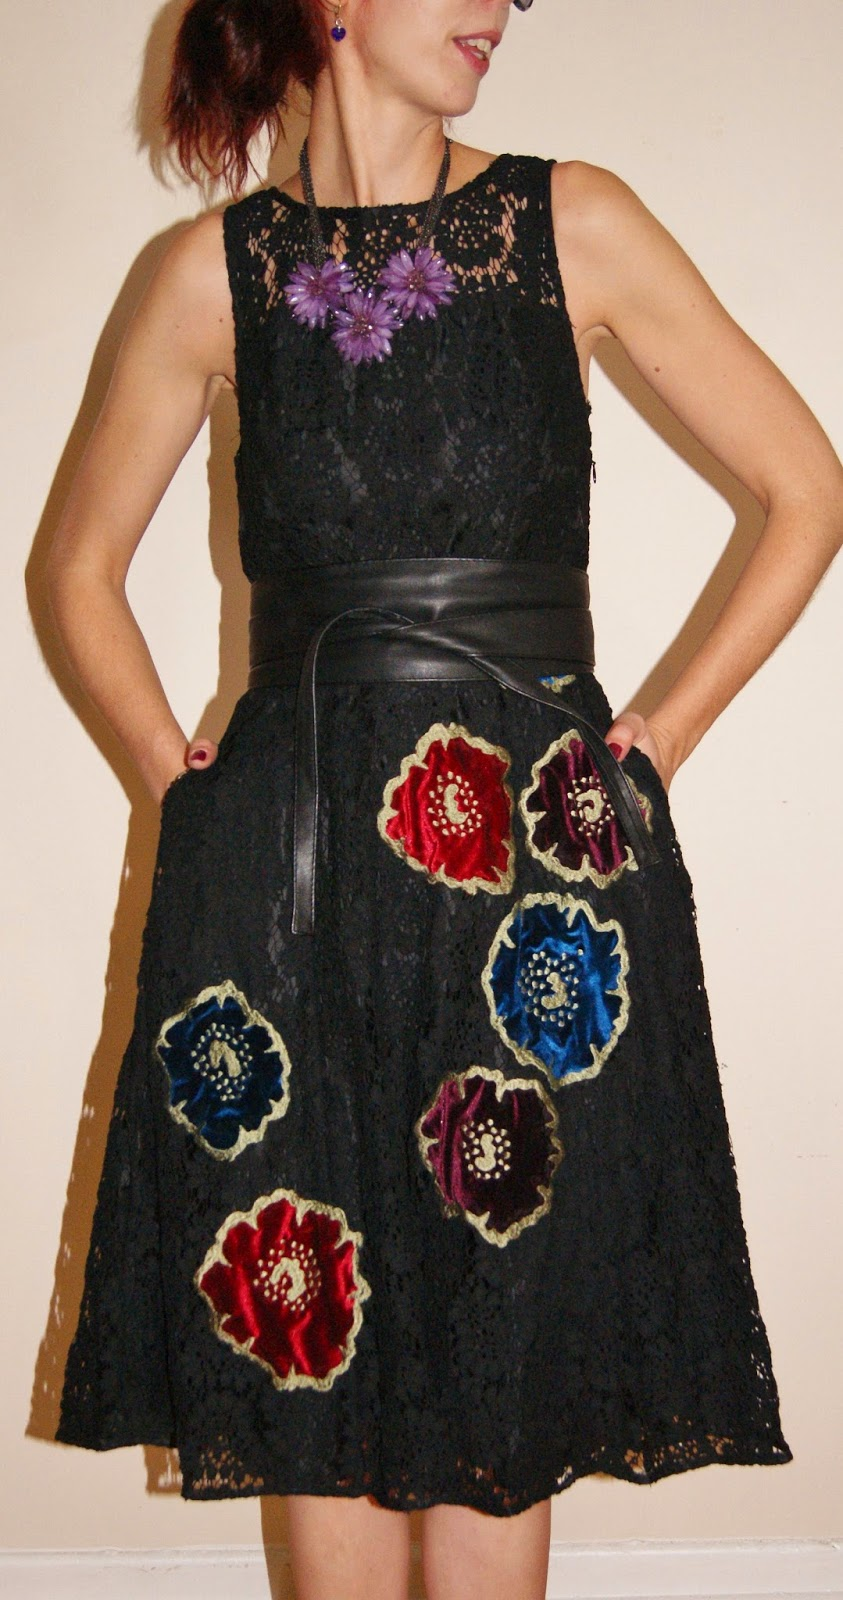 eShakti Floral Applique Lace Dress, Aldo Feather Clutch, Belt, Suzy Shier Purple Flower Necklace, online, fashion, clothing, customize, review, toronto, ontario, canada, the purple scarf, melanie.ps, style, styletips, shopping, ordering